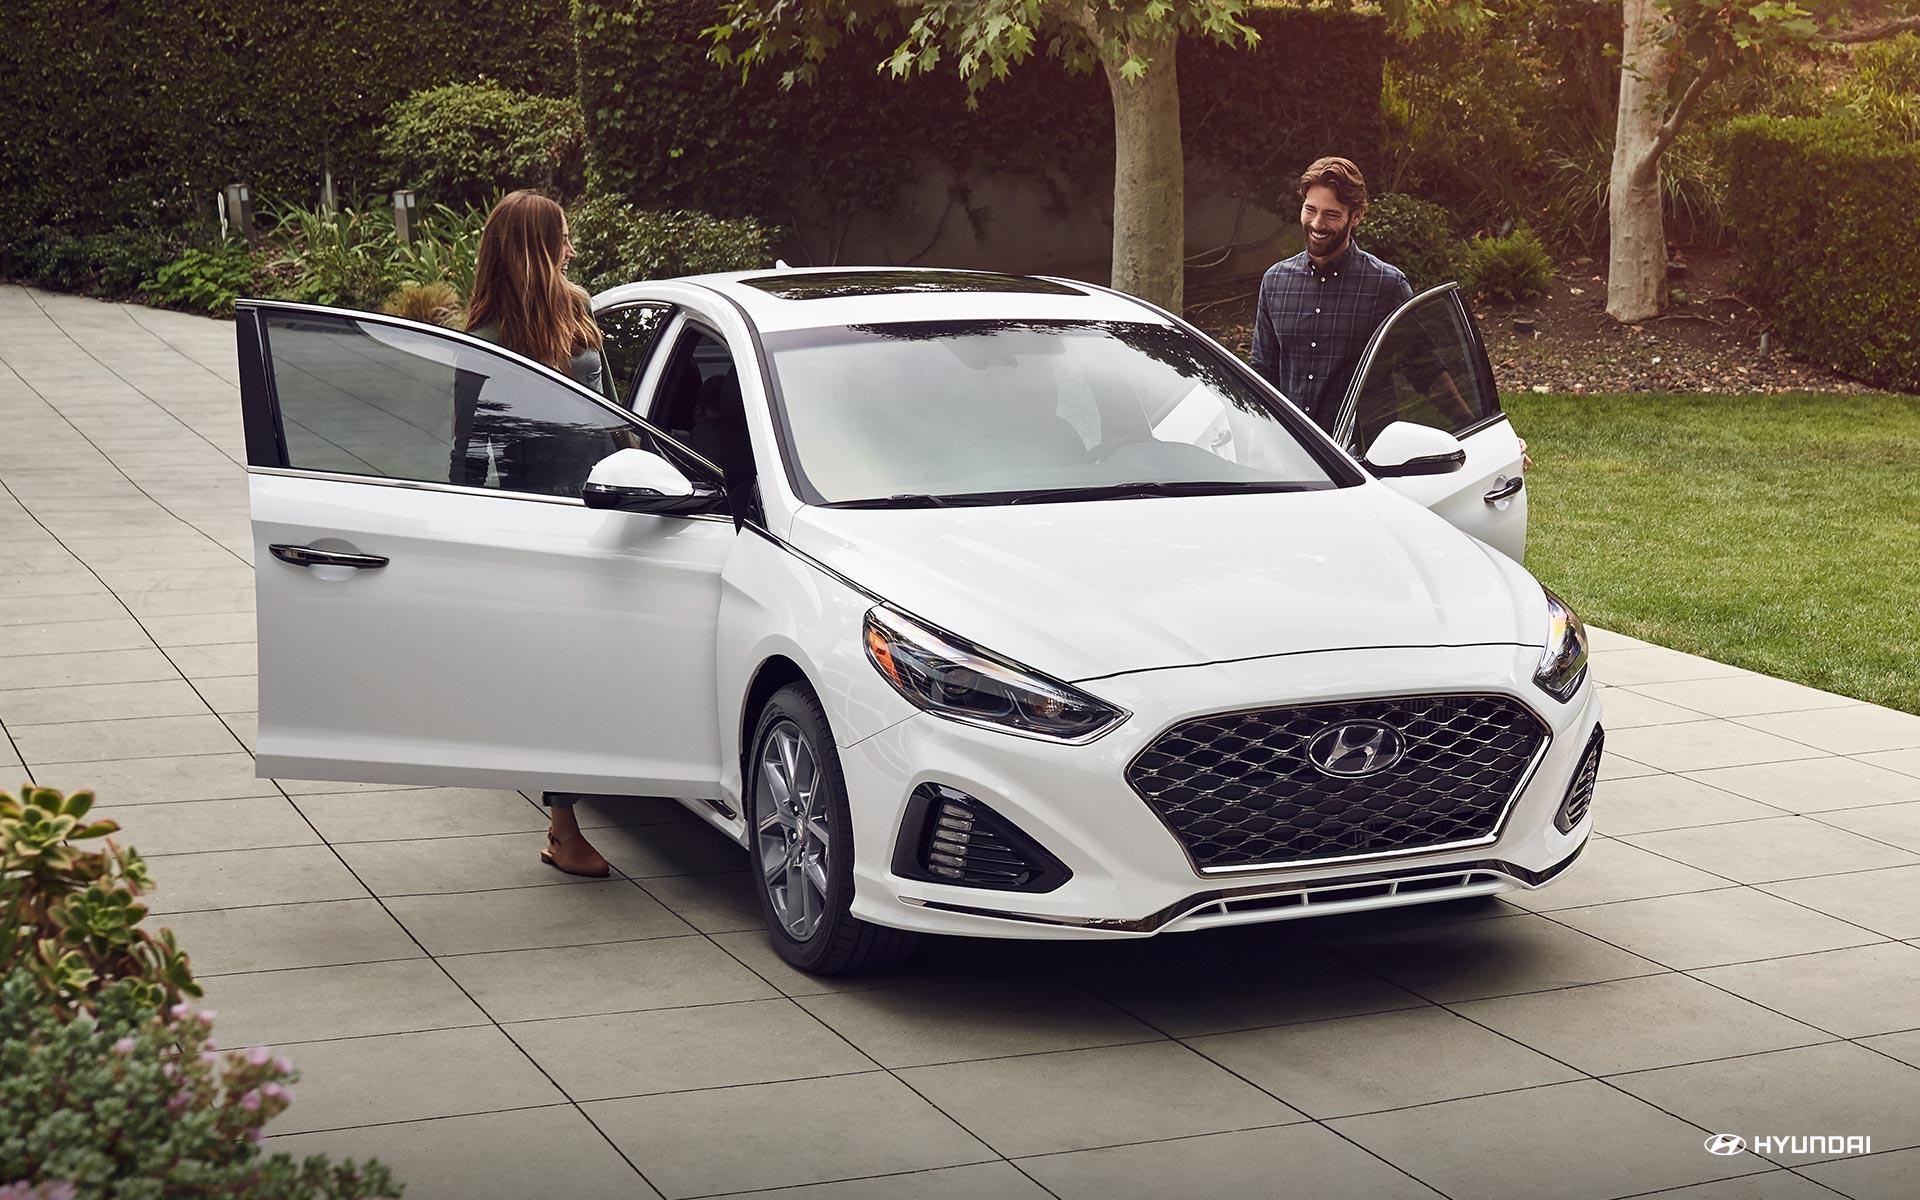 Used Hyundai Sonata for Sale near Manassas, VA